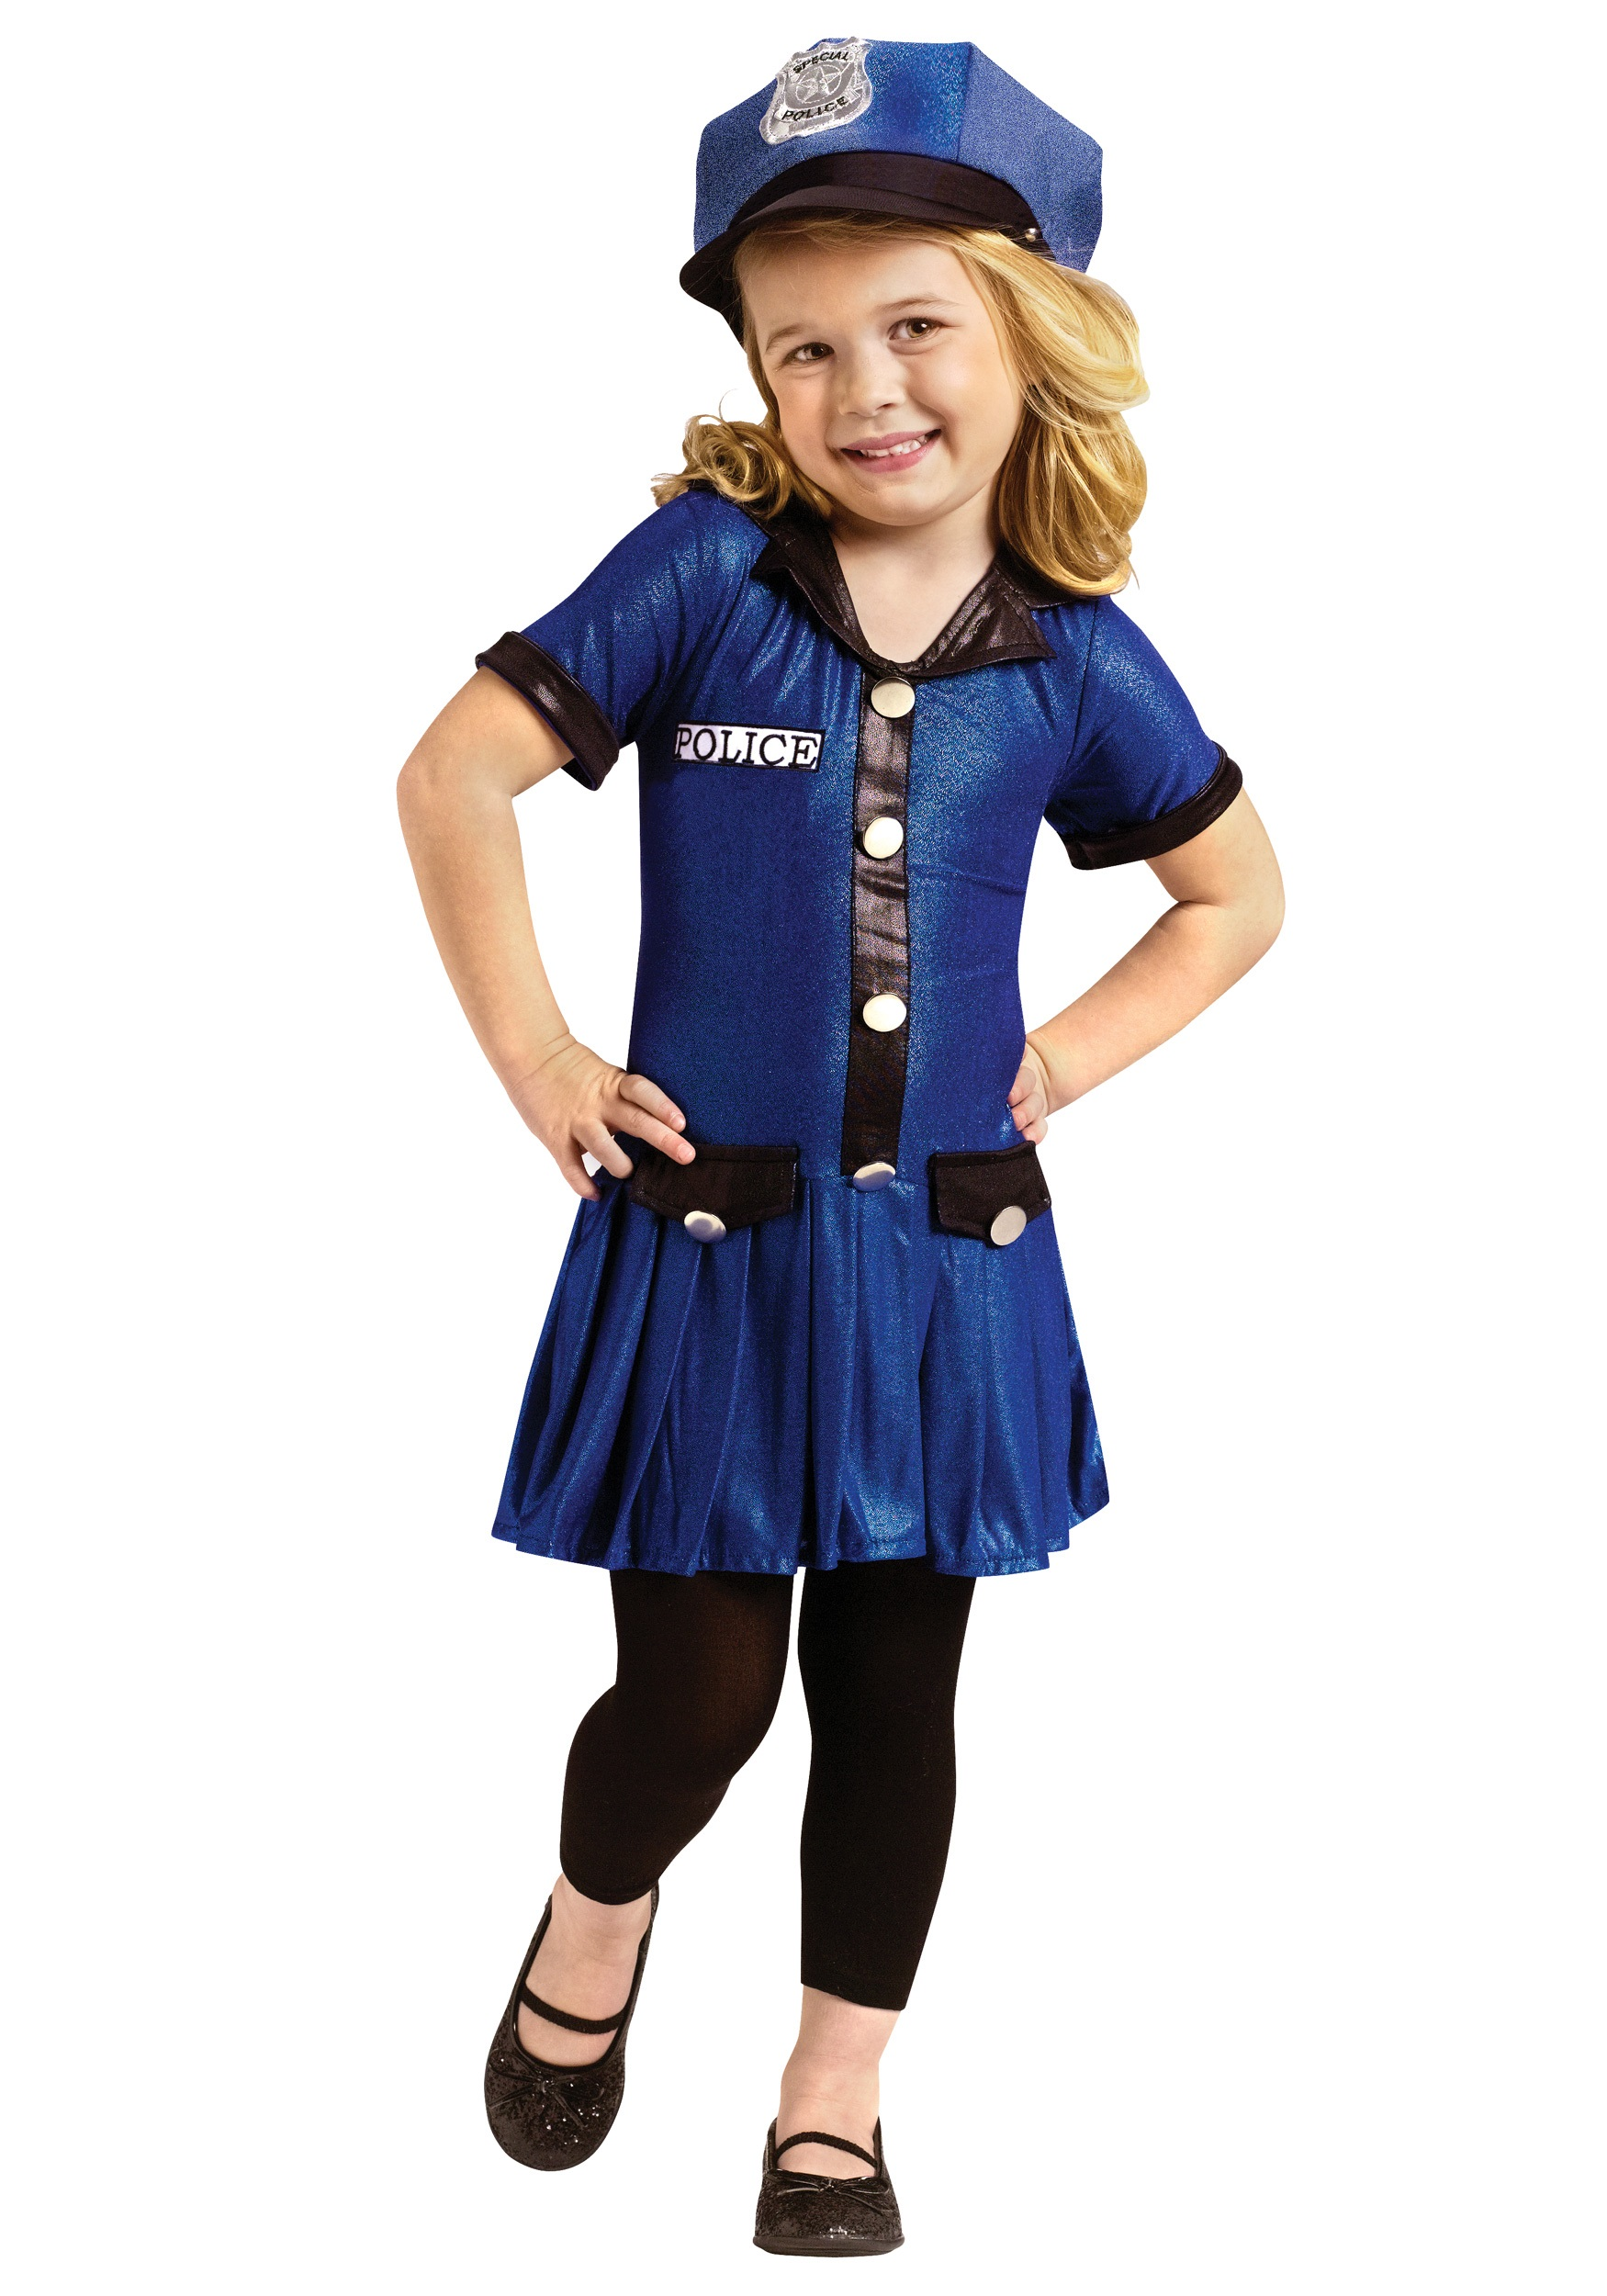 Toddler Girls Police Costume - Halloween Costumes